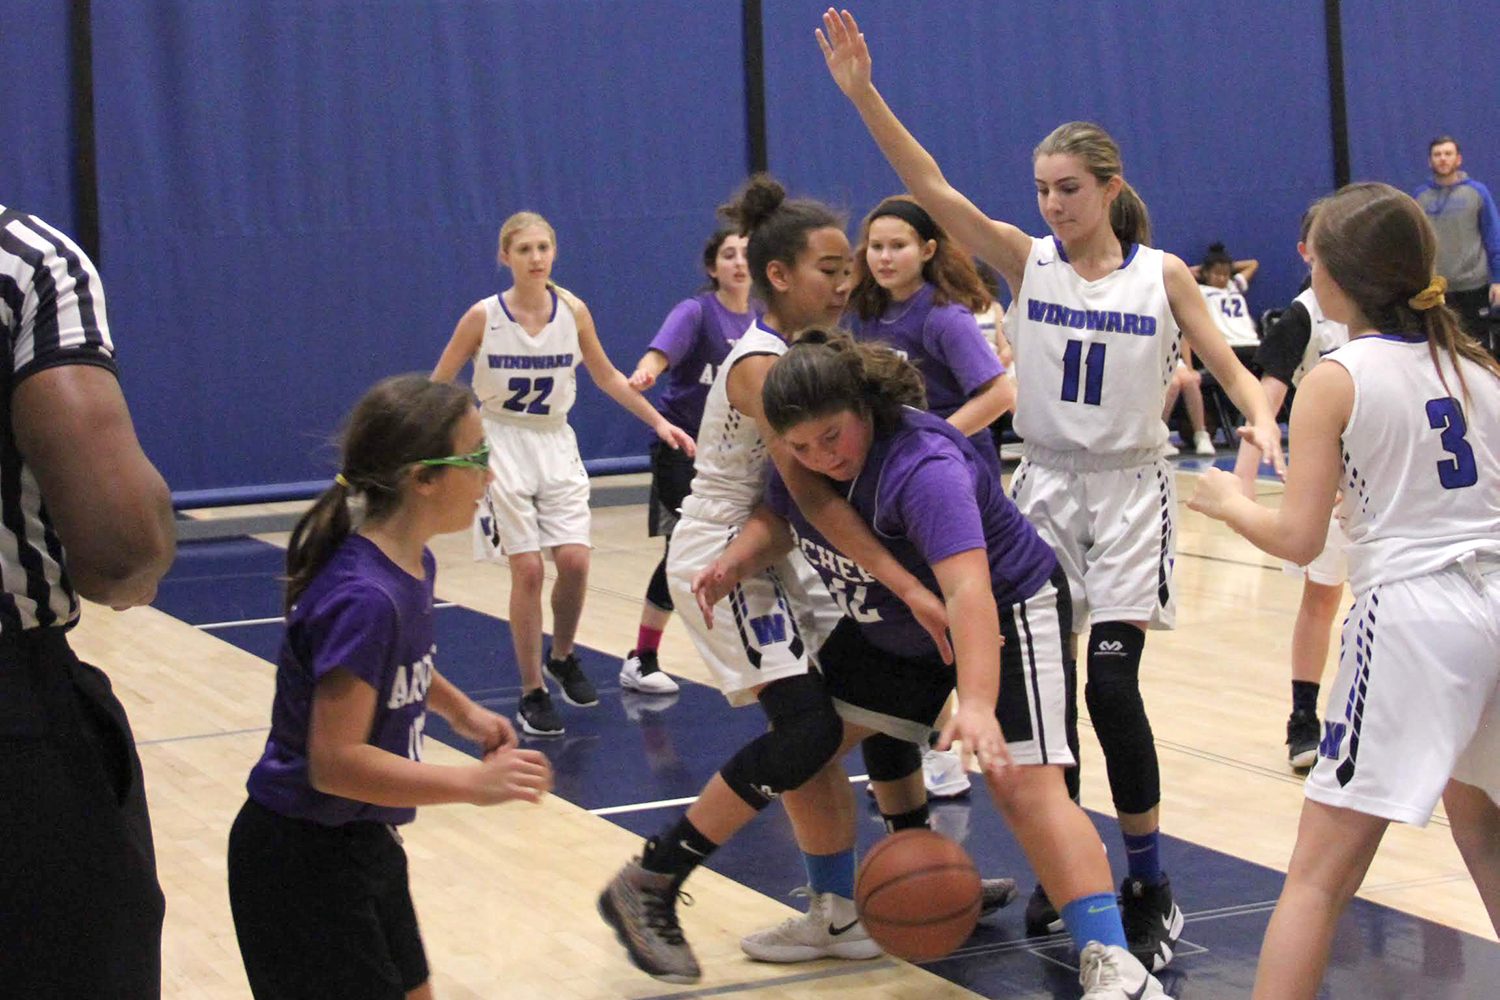 Captain Annabelle Terner '23 tries to keep the ball at a game against Windward School on December 18. Unlike past years, this season's team combines players from all middle school grades.